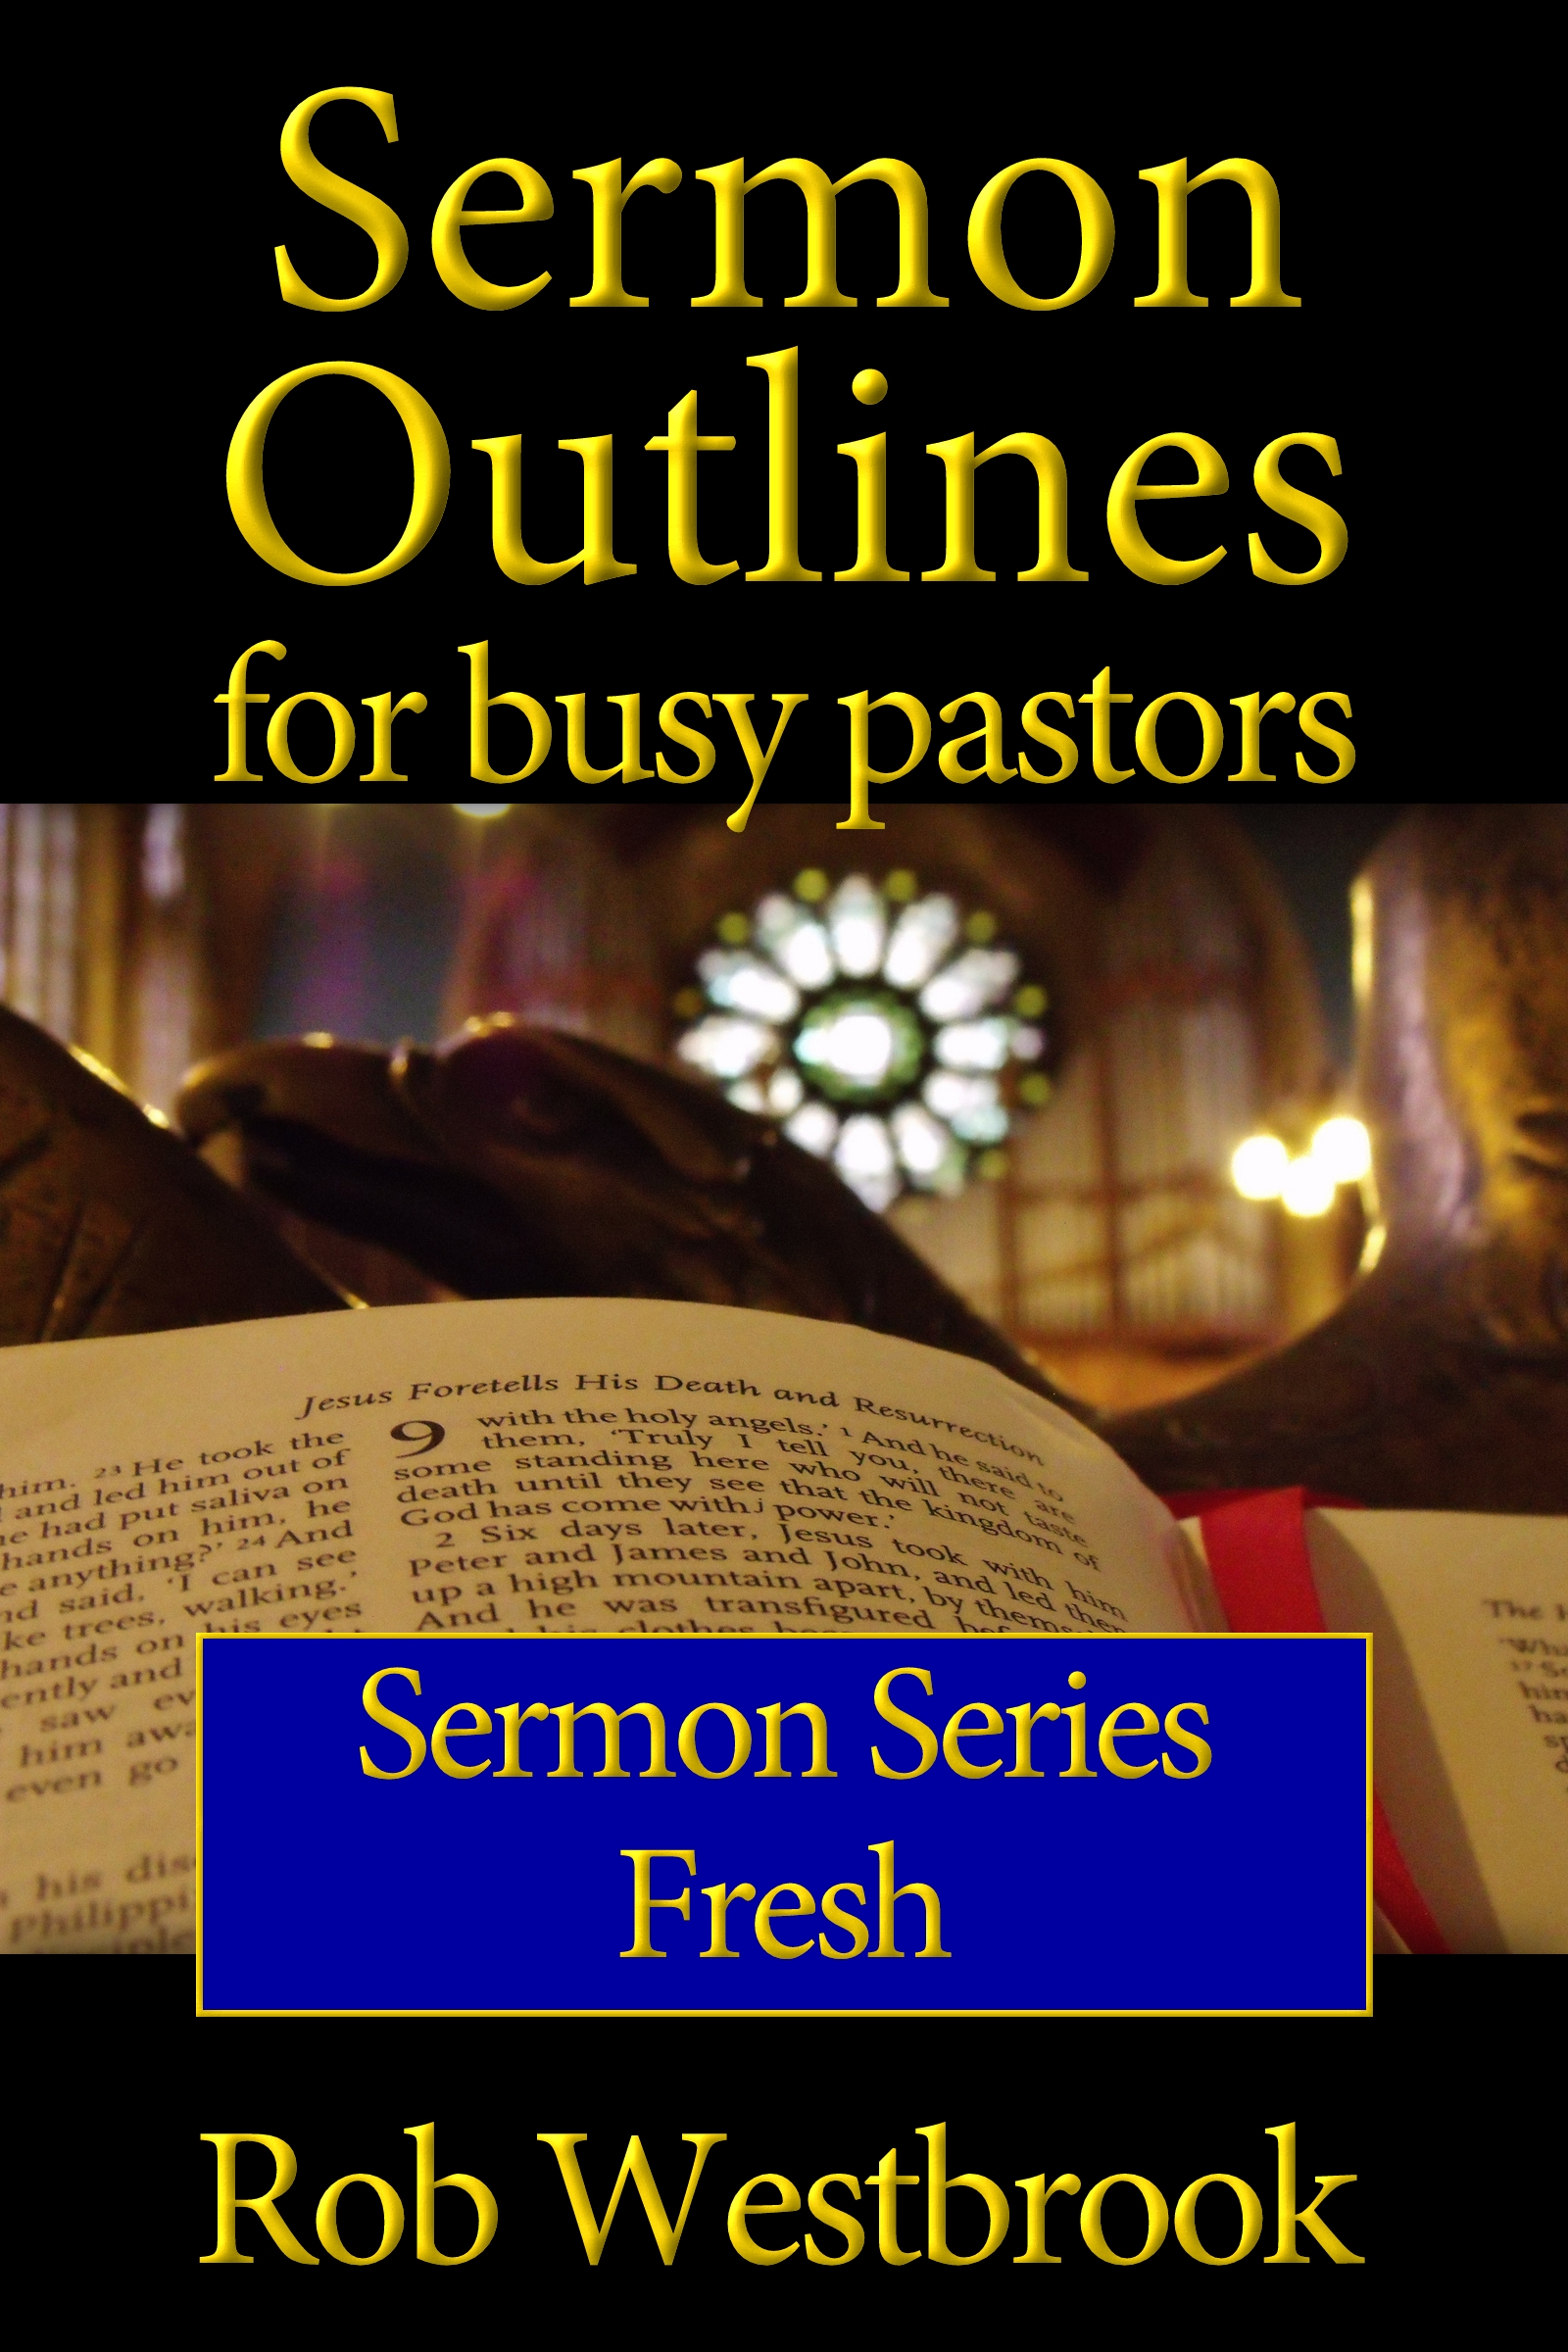 Sermon Outlines for Busy Pastors: Fresh Sermon Series, an Ebook by Rob  Westbrook